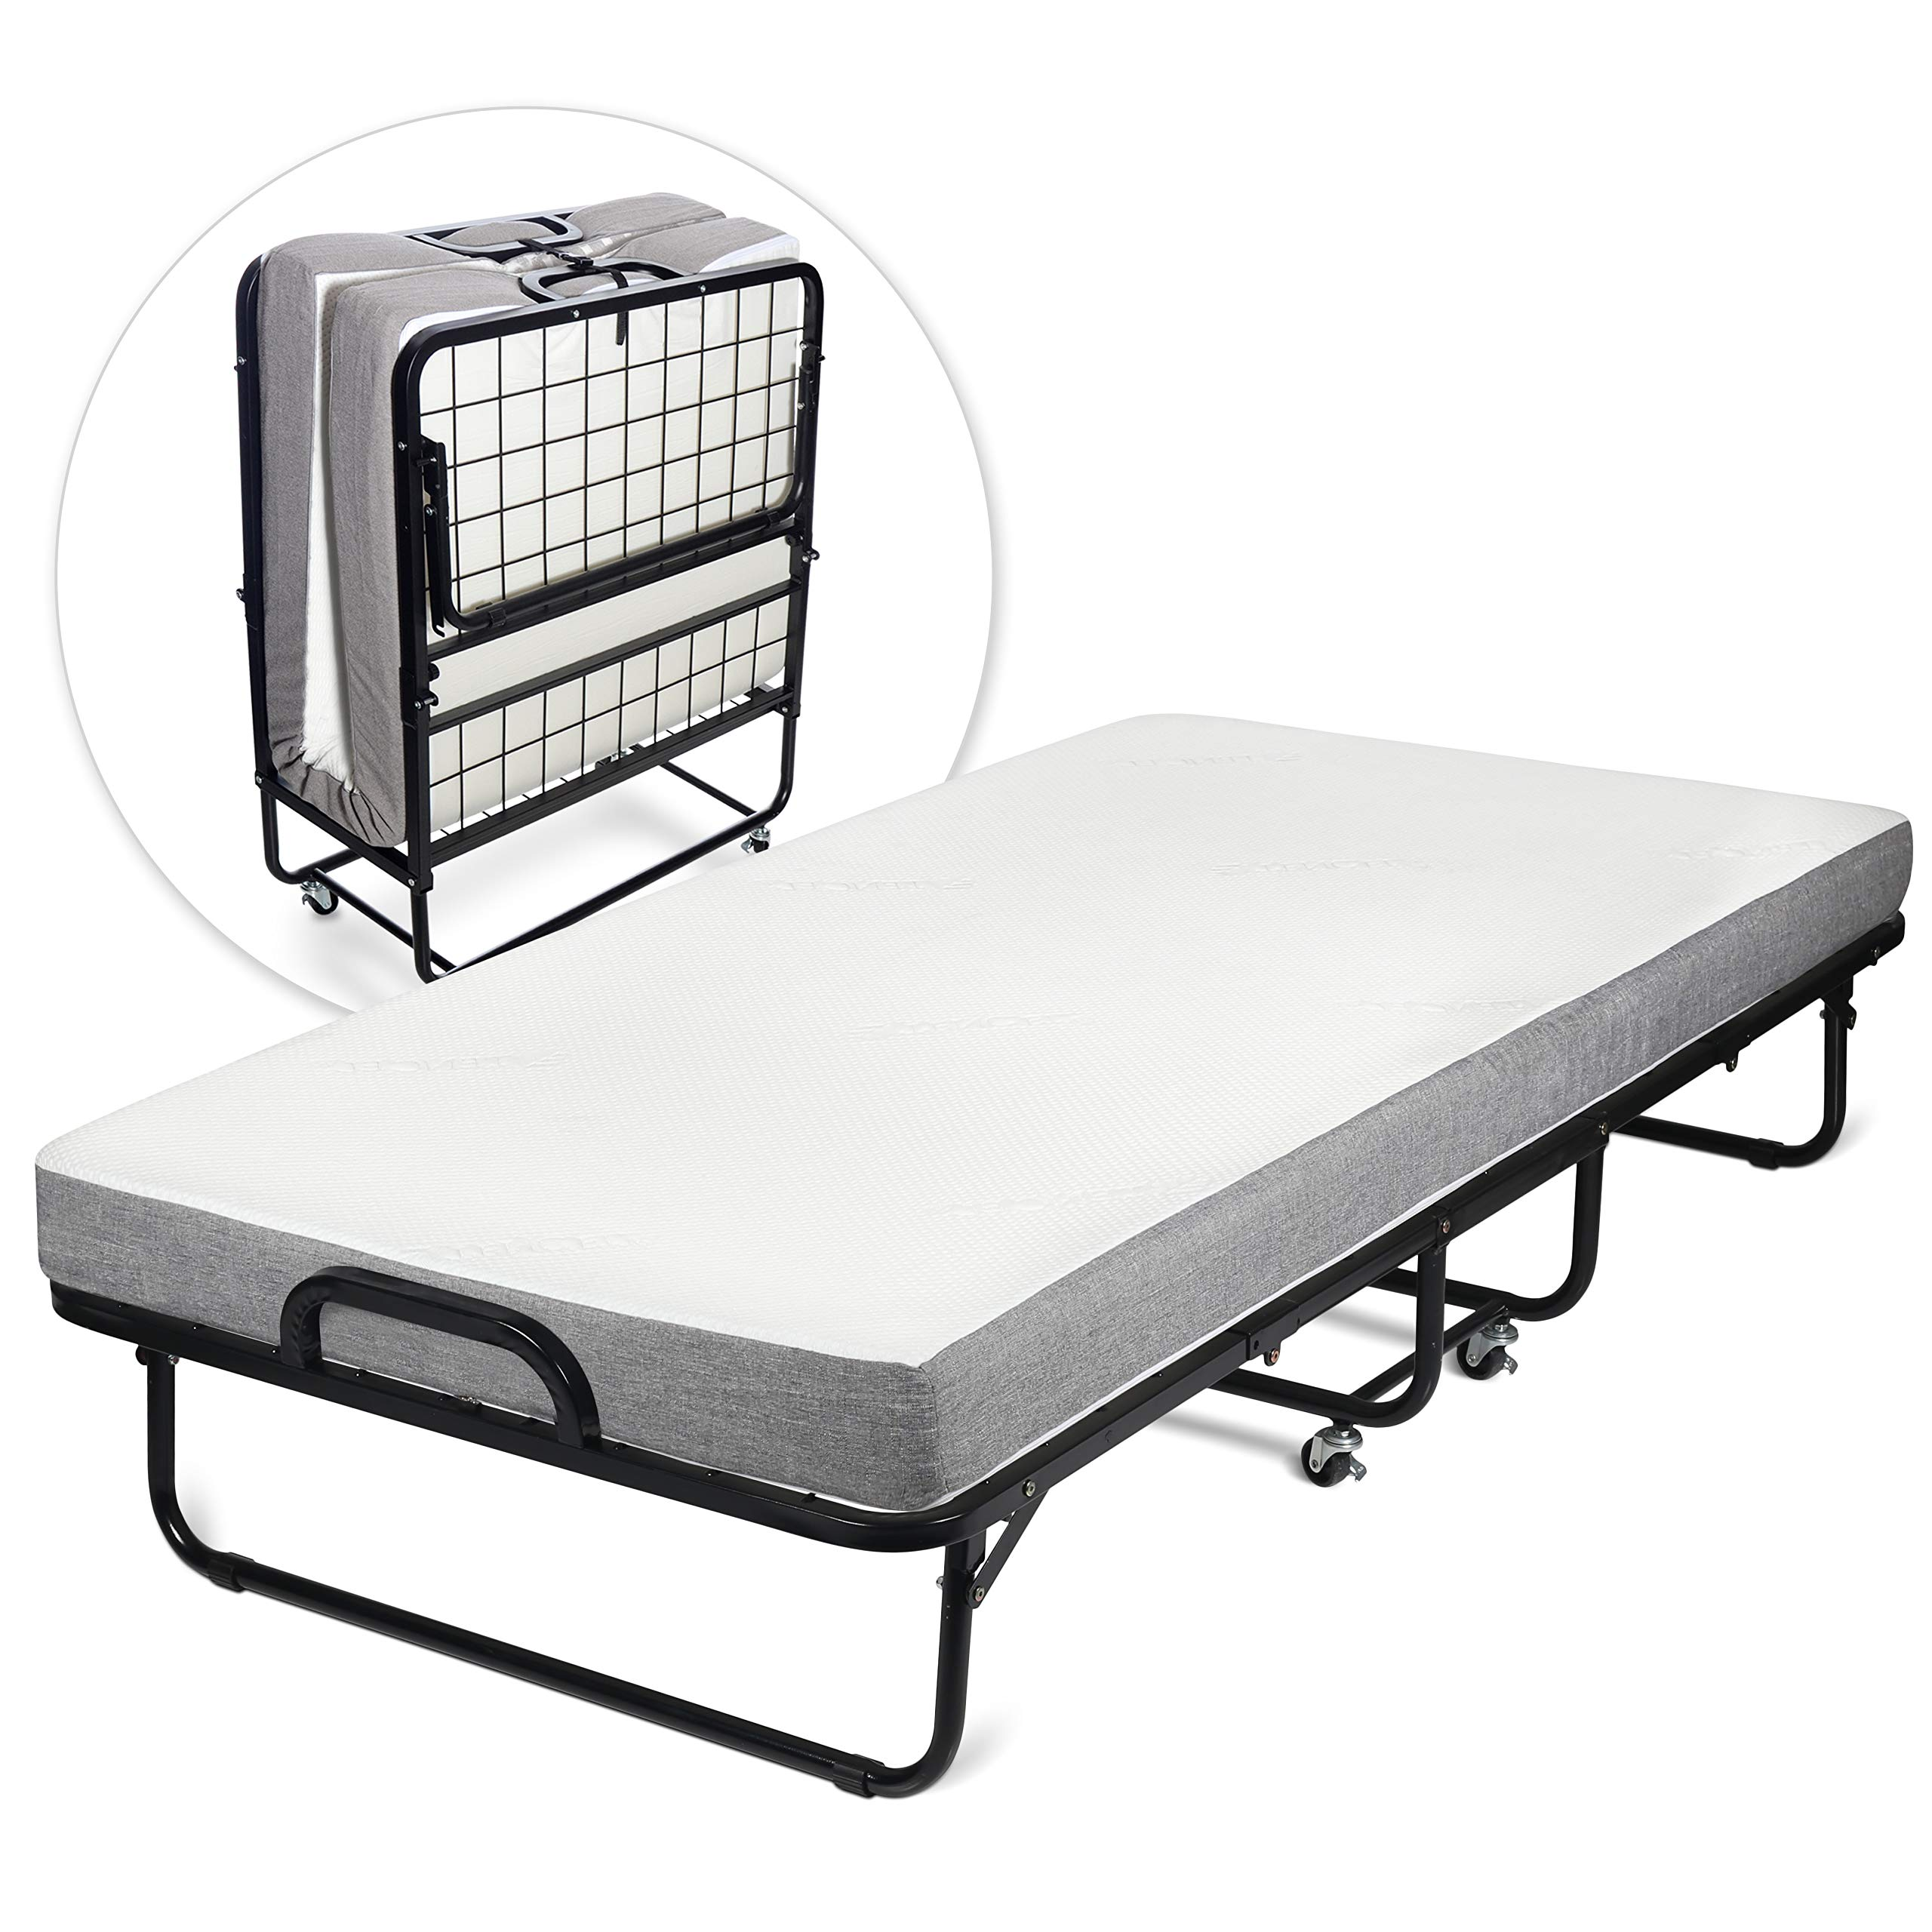 Milliard Diplomat Folding Bed - Twin Size - with Luxurious Memory Foam Mattress and a Super Strong Sturdy Frame - 75'' x 38